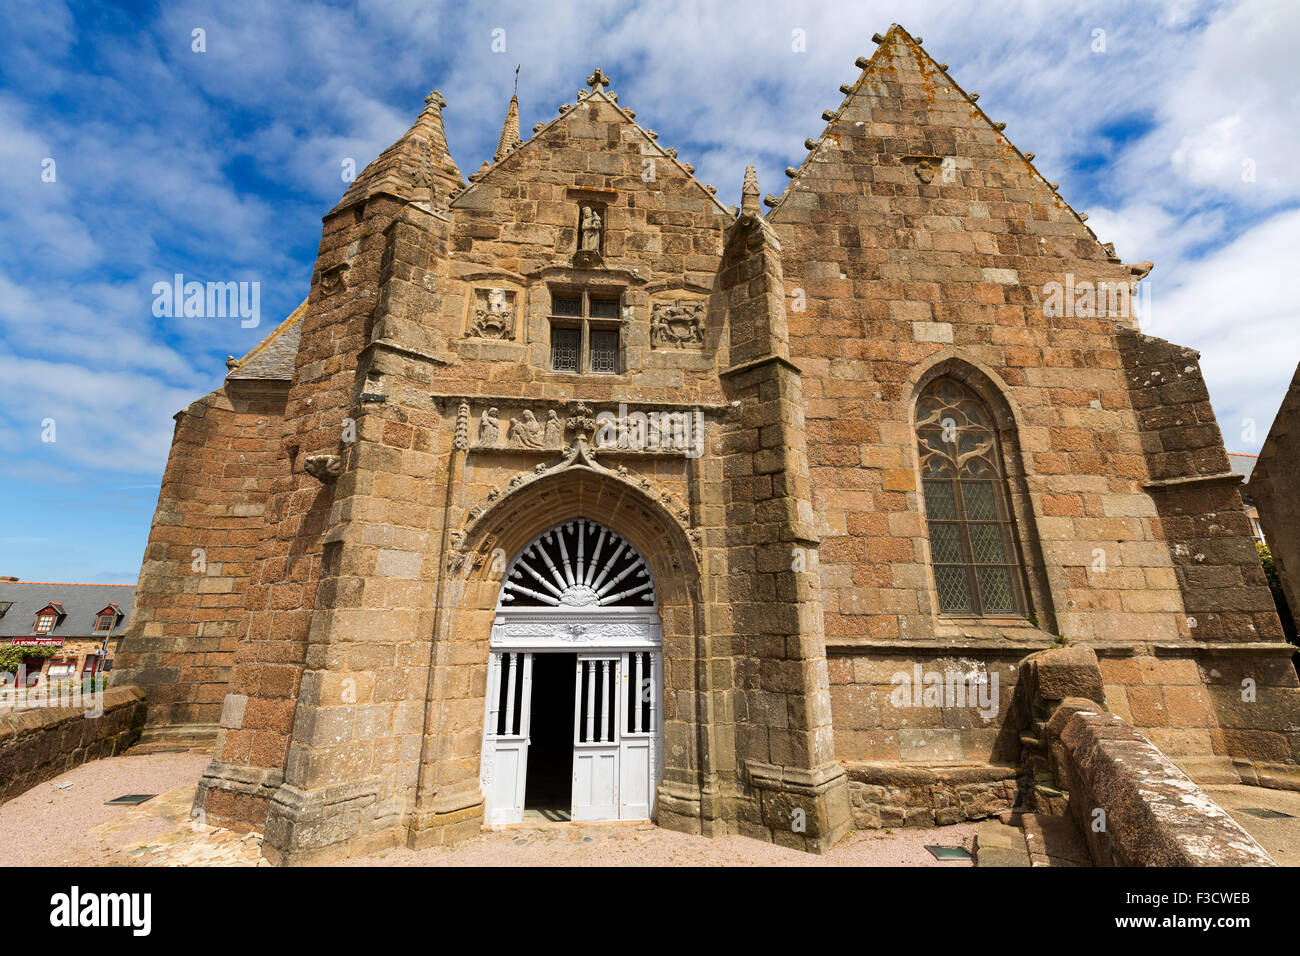 Chapelle Notre Dame de la Clarte at Perros Guirec French Brittany France Europe - Stock Image